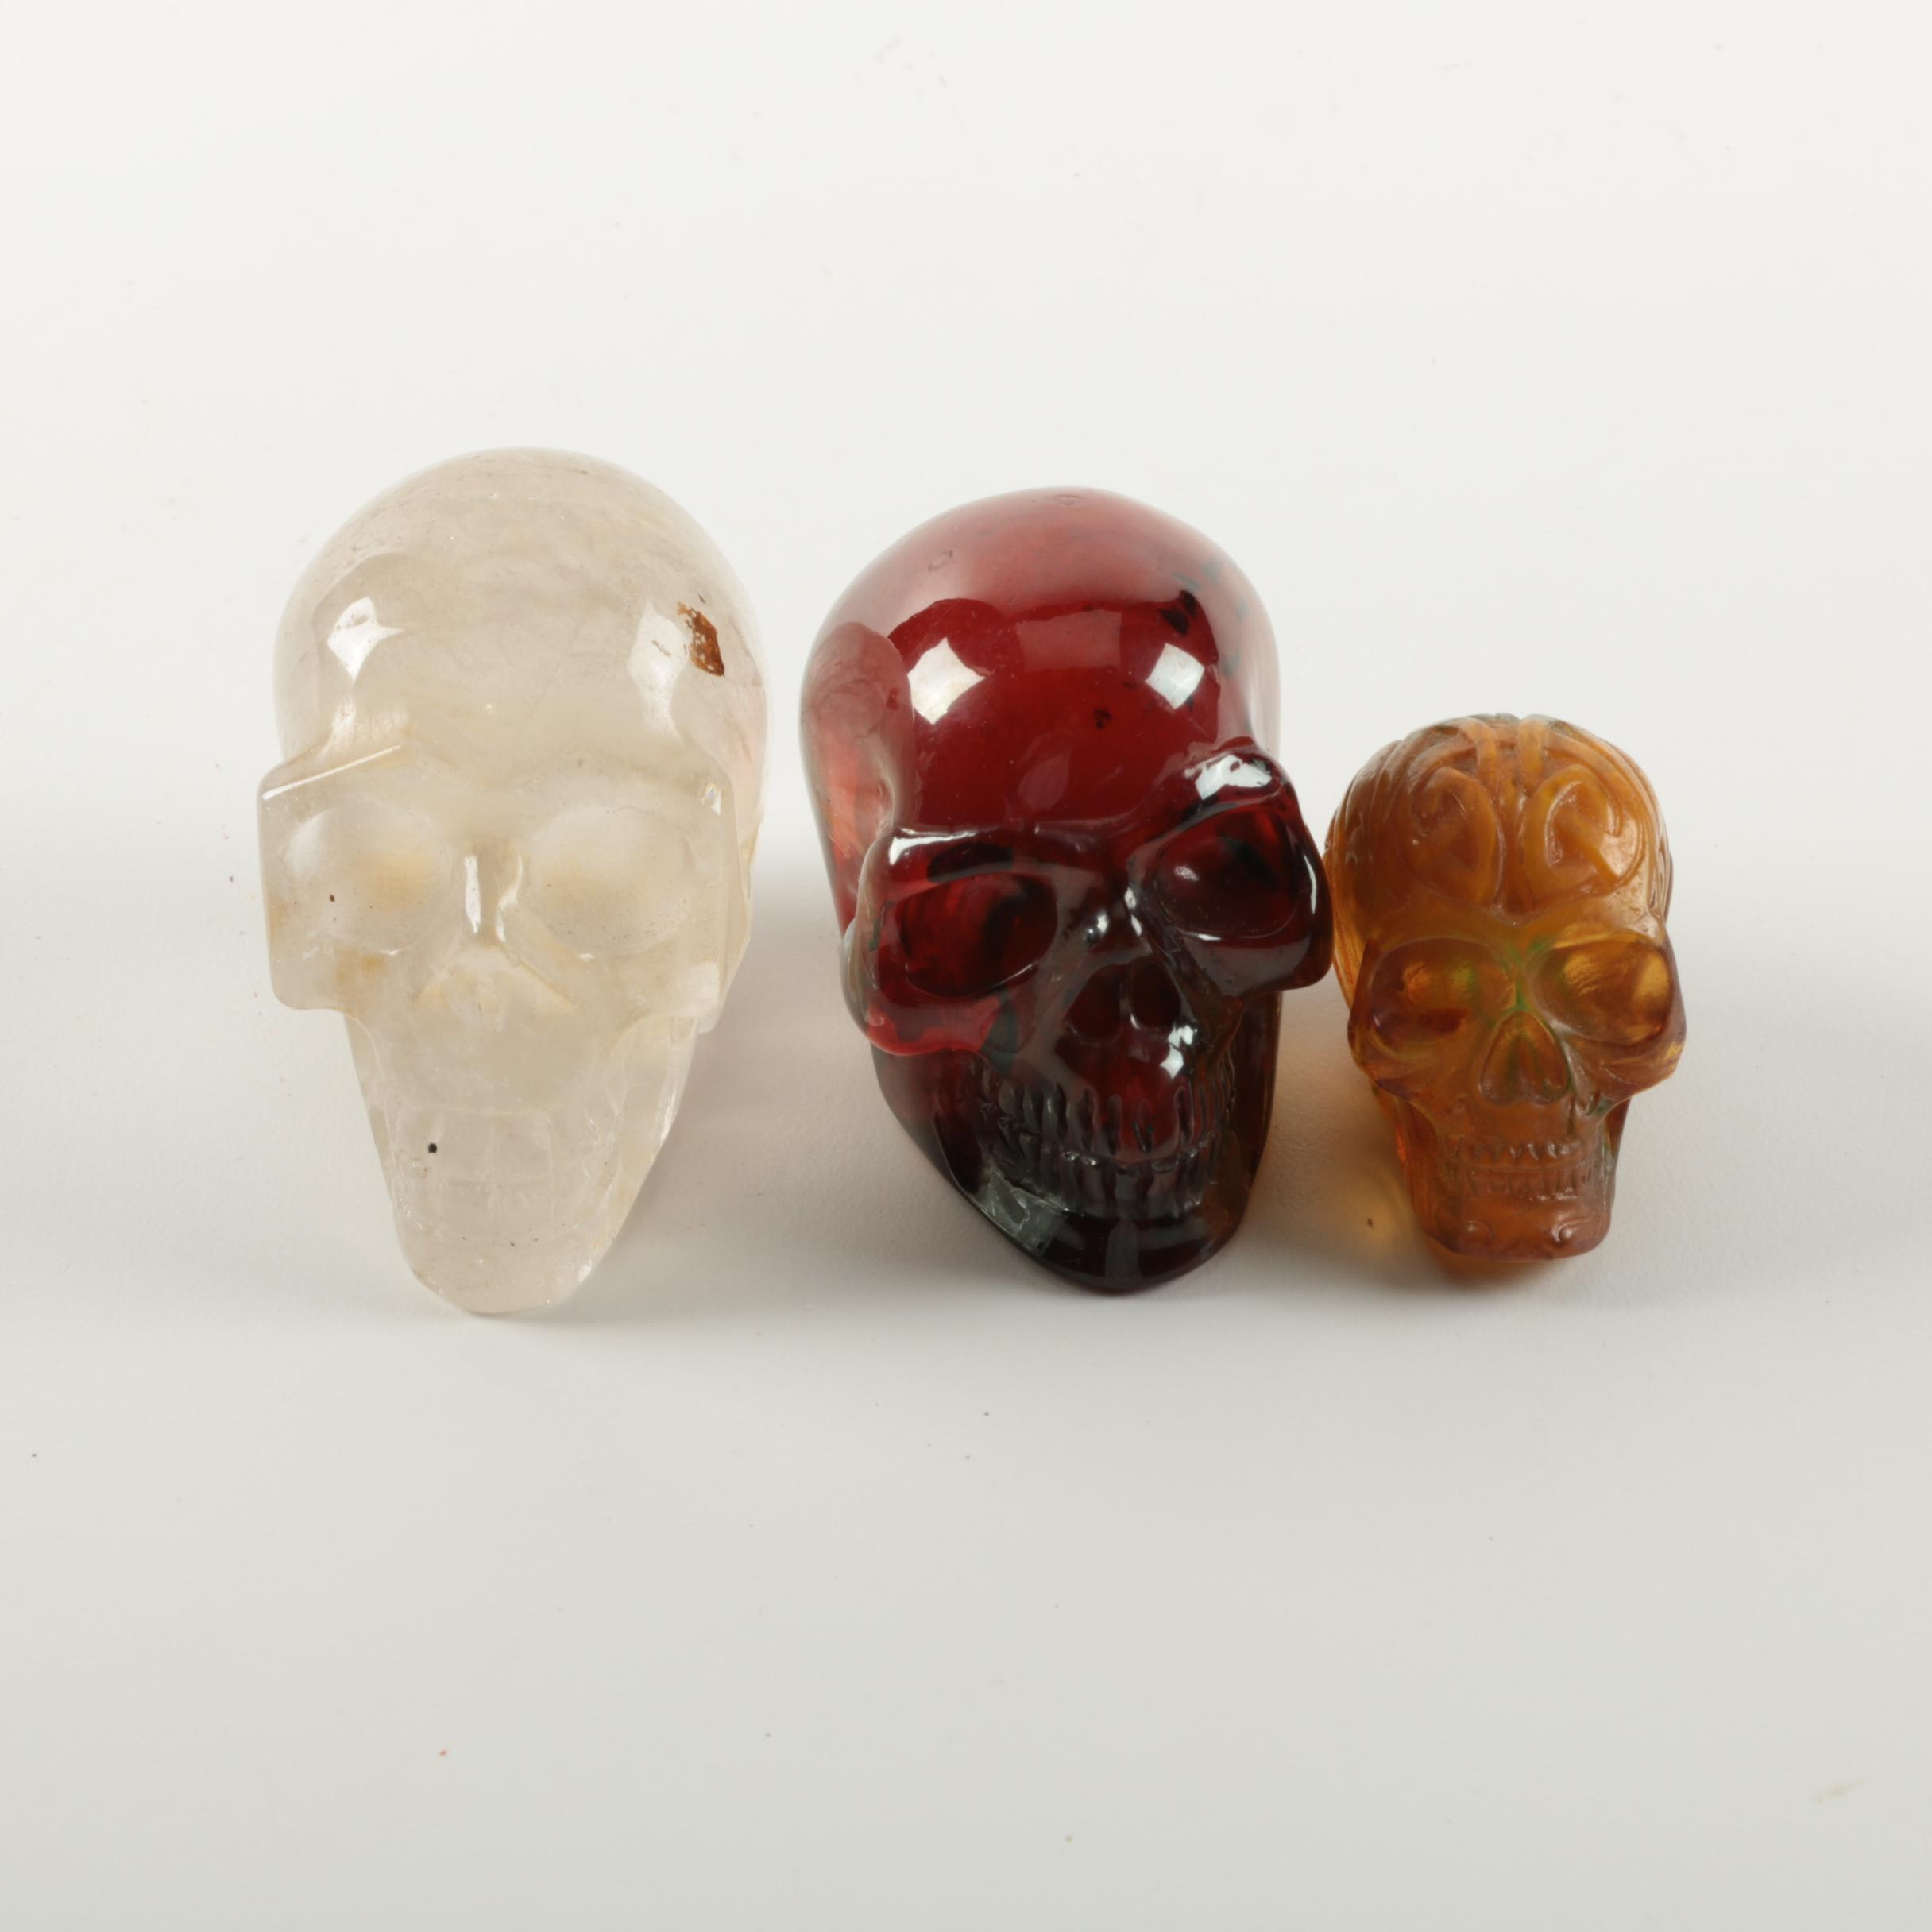 Quartz and Plastic Skulls